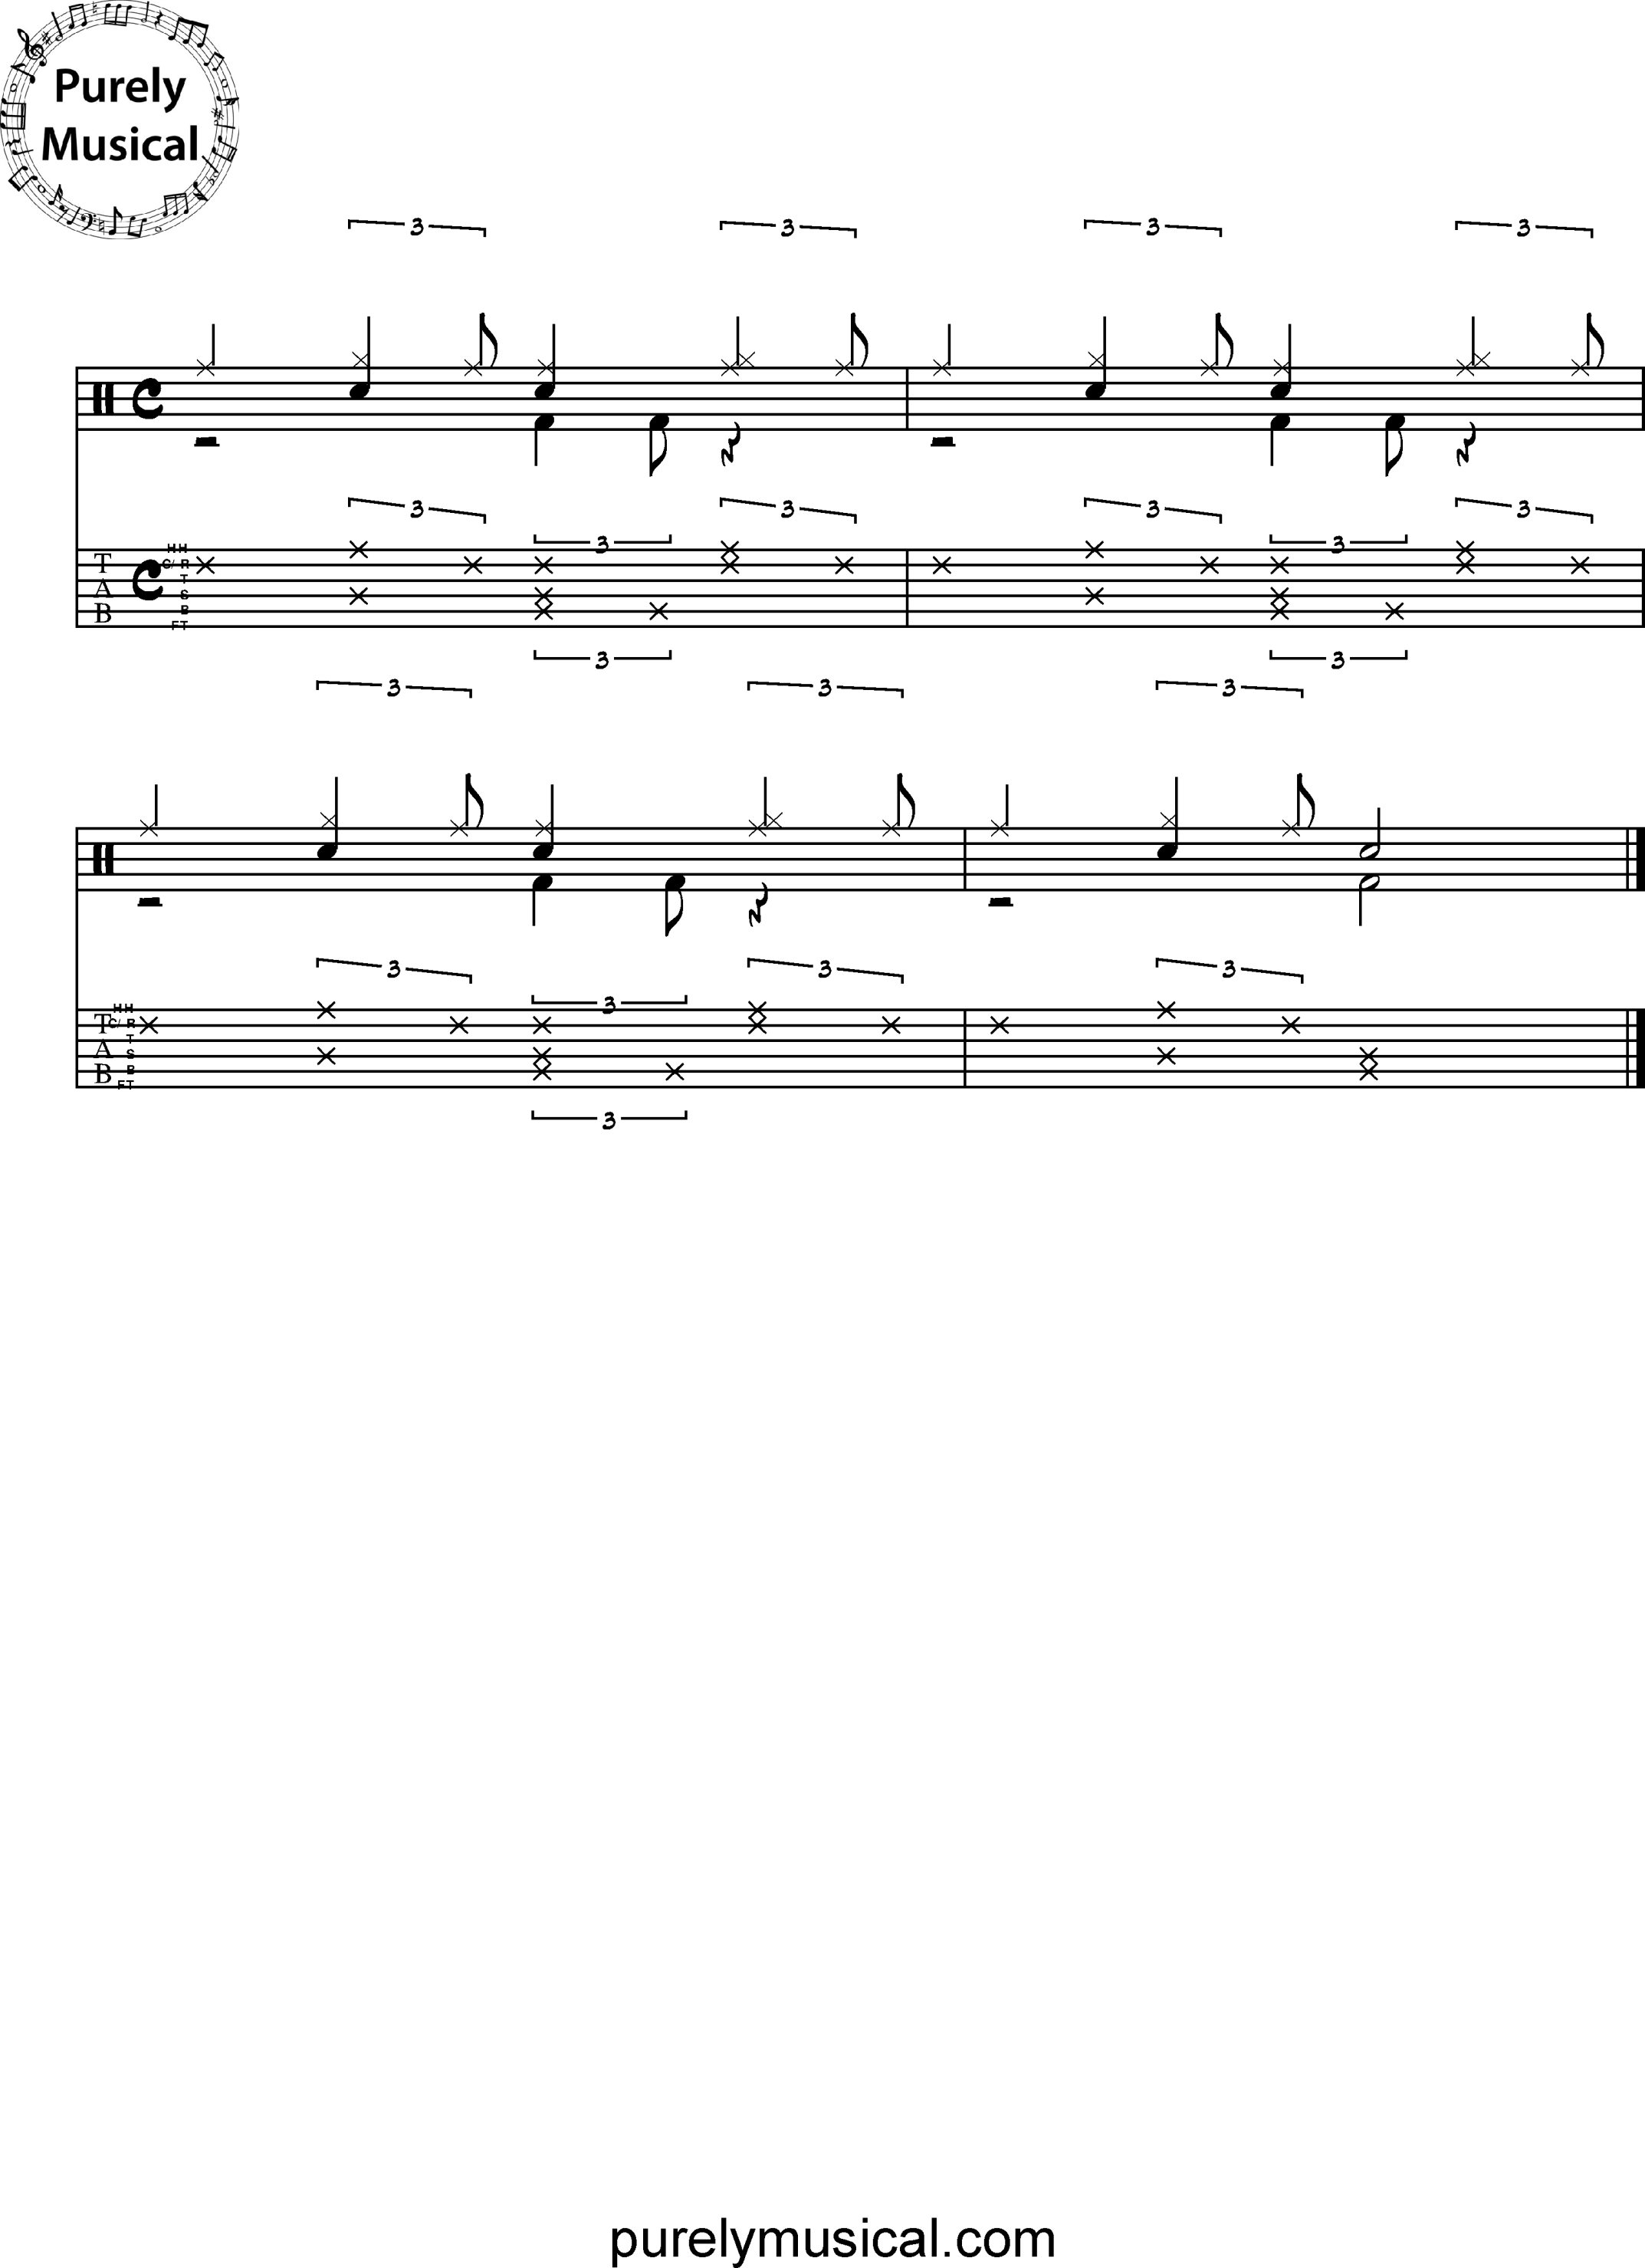 Beginner  Drum Grooves - Jazz Grooves Two-voice Exercise No 2